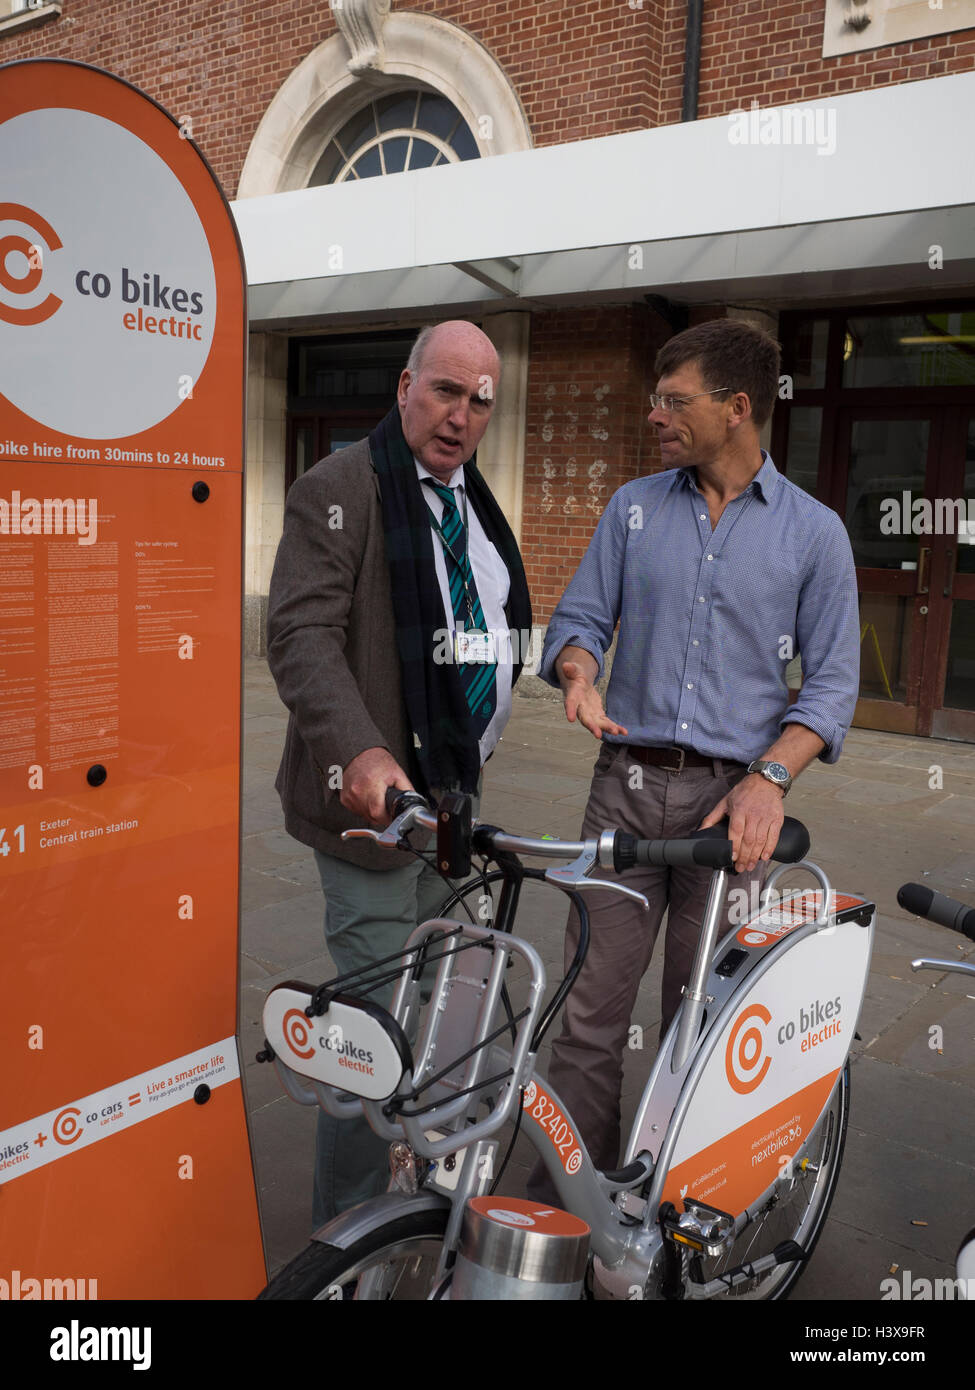 Exeter UK 13 Oct 2016 central station. Launch of co bikes first community electric bike scheme in UK Credit:  Anthony Stock Photo